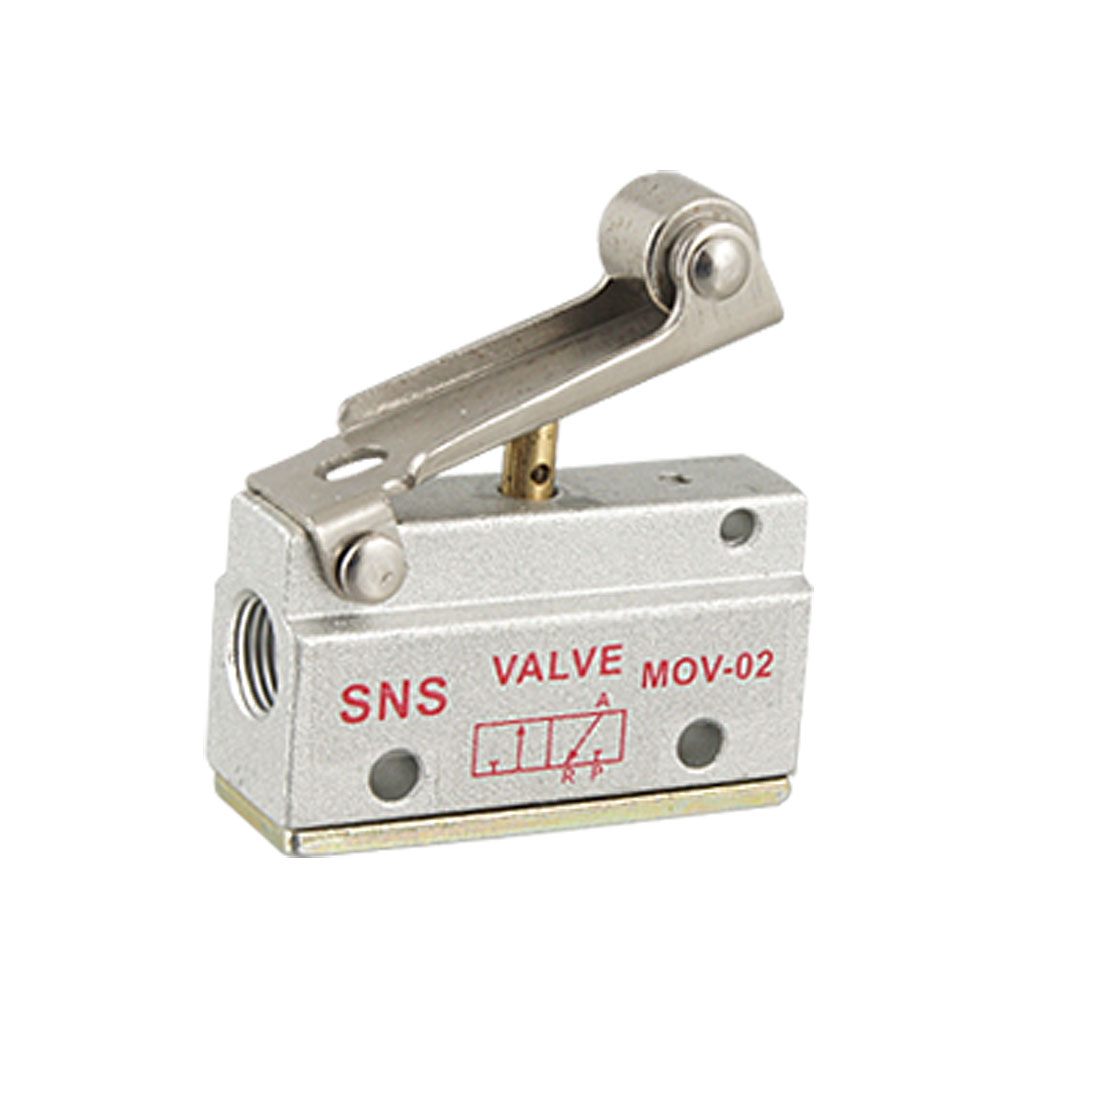 2 Position 2 Way Mechanical Pneumatic Valve 1/8 BSP